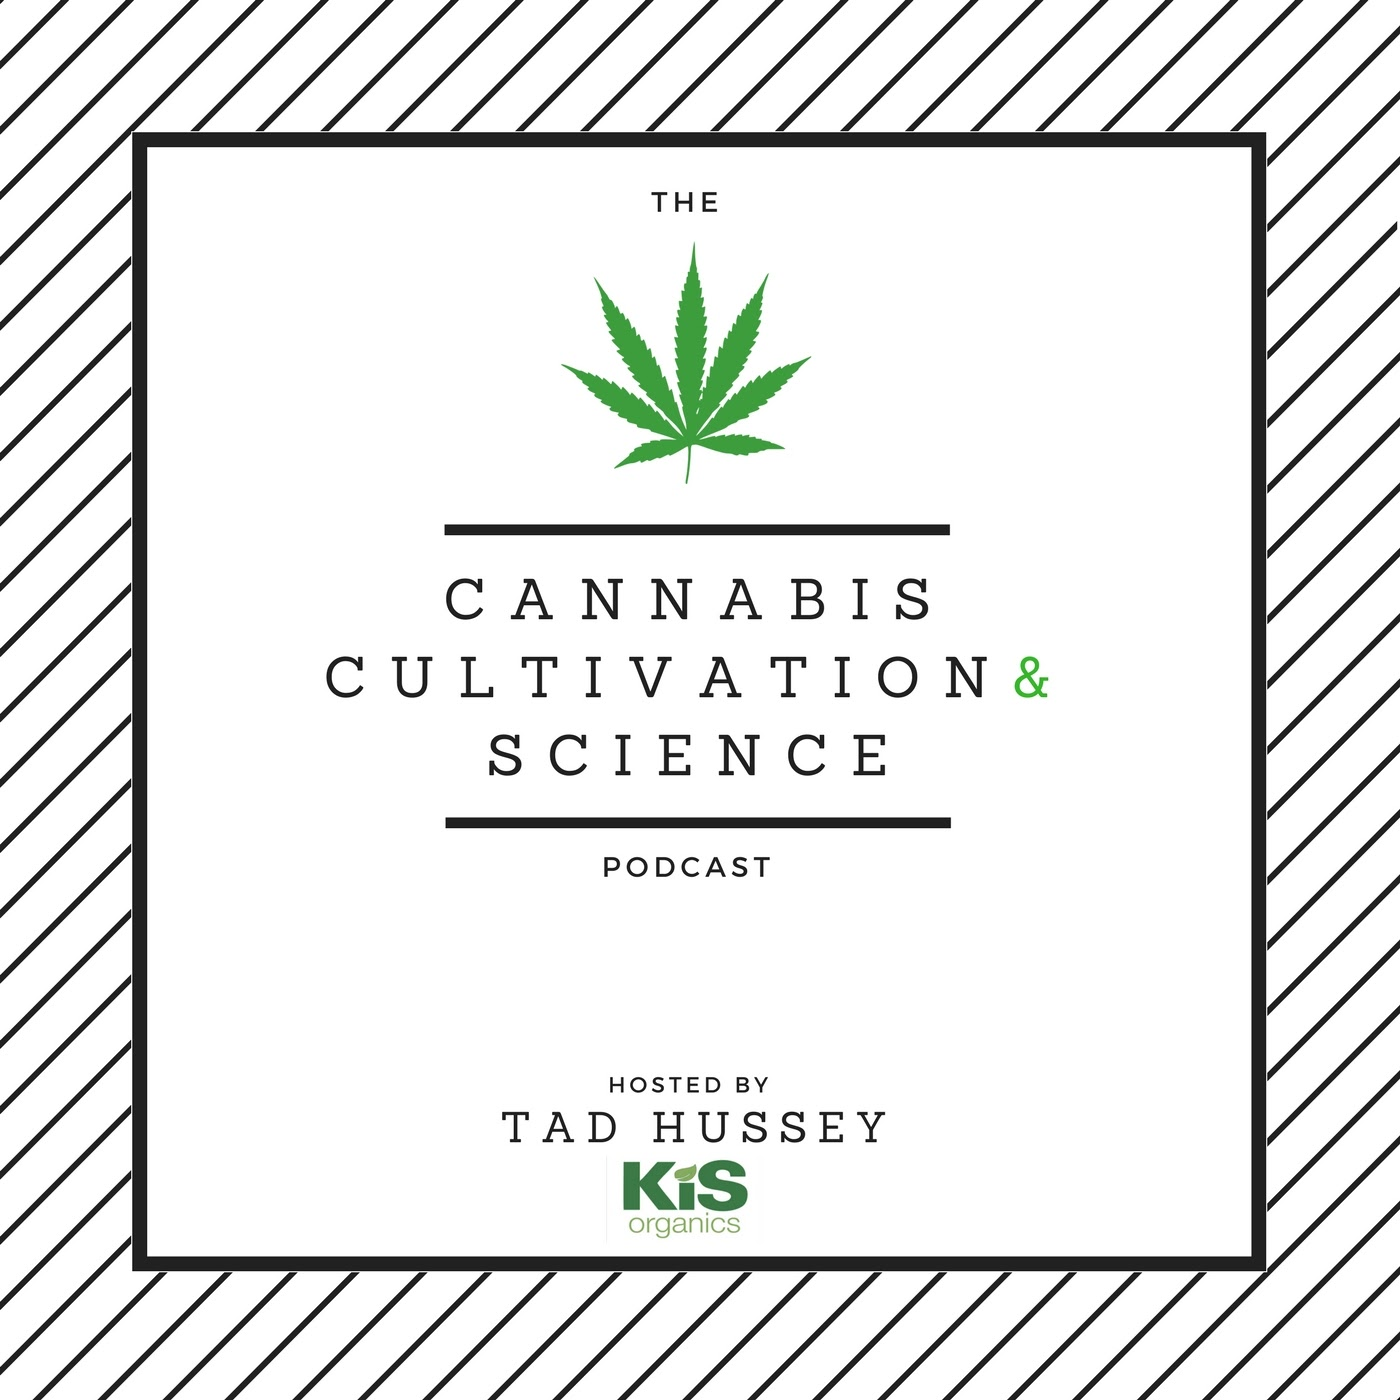 Cannabis Cultivation and Science Podcast - Best Cannabis Growing Podcast 2020